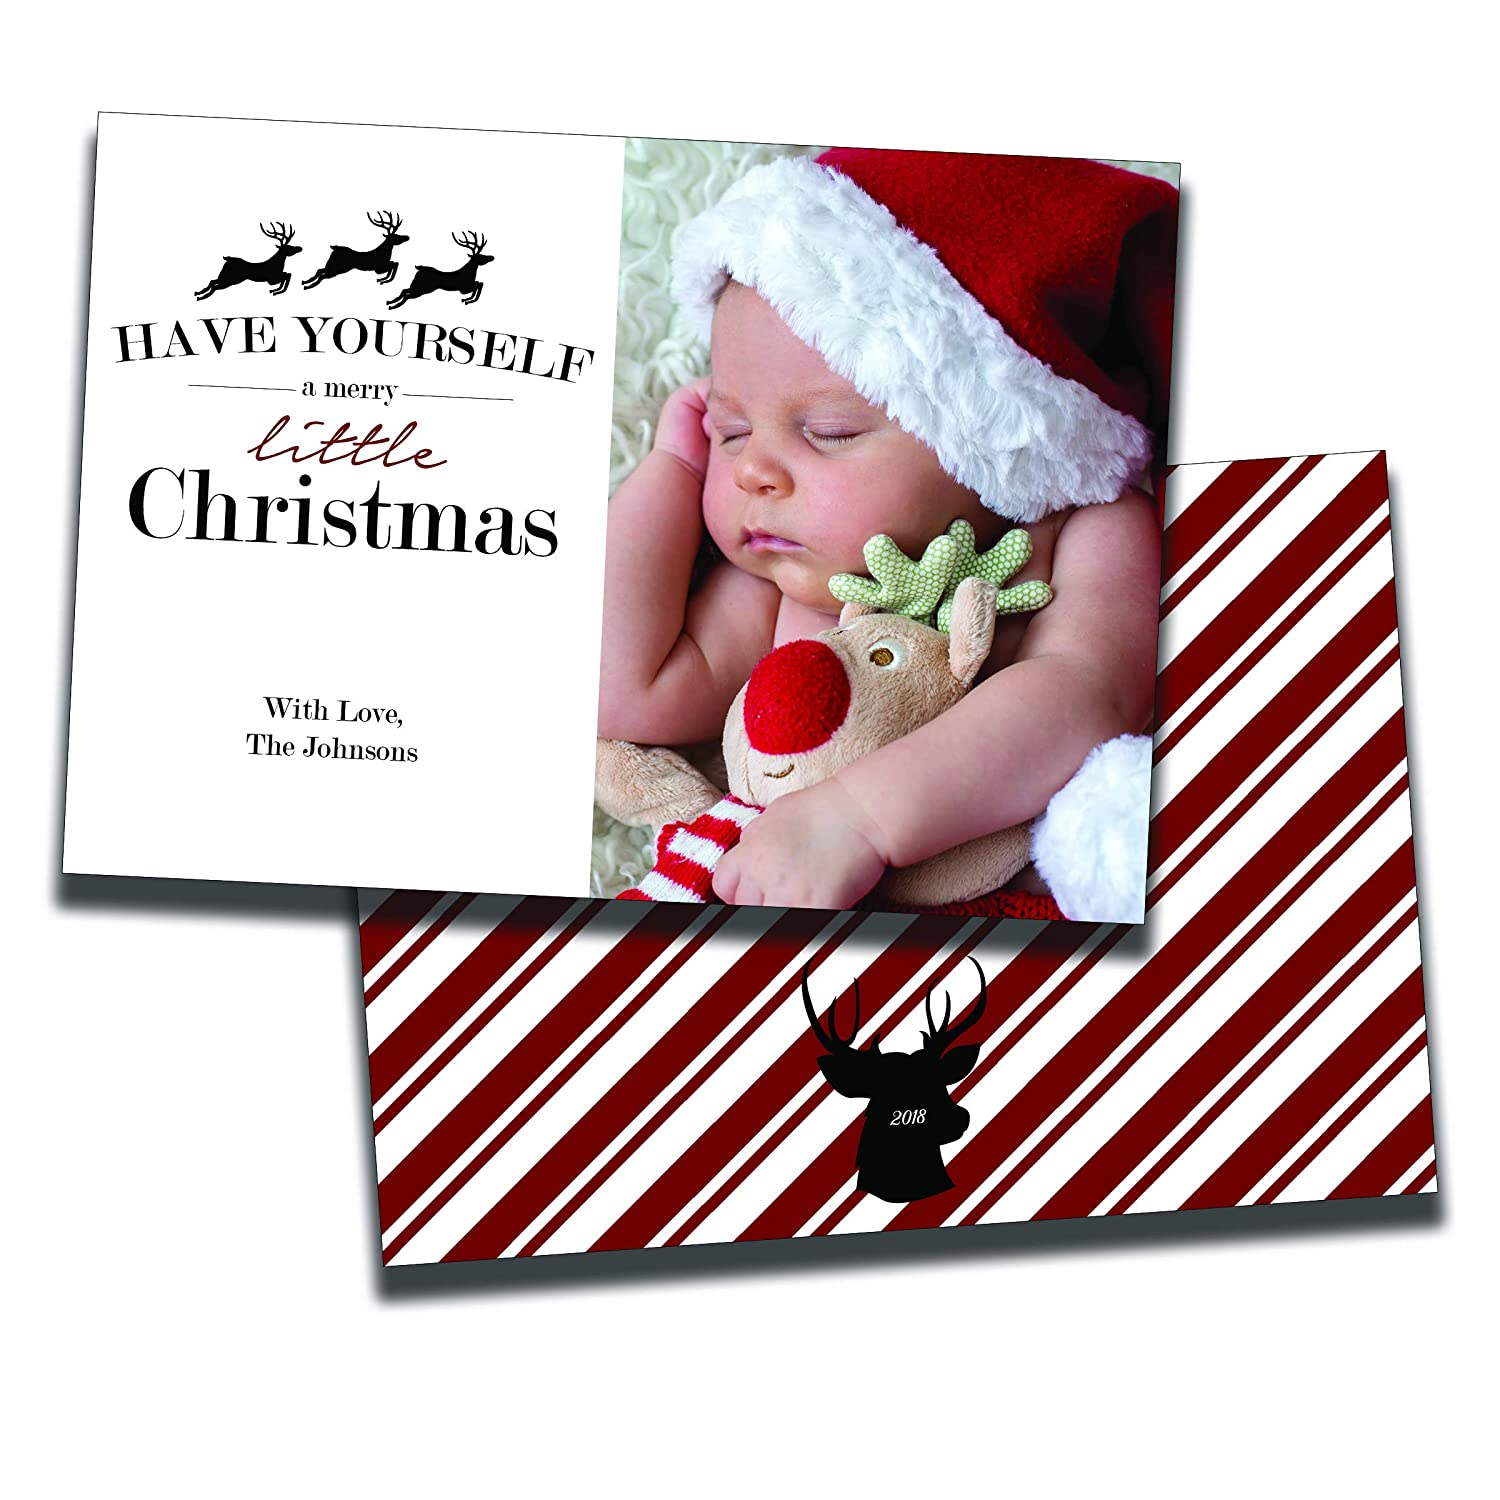 Amazon.com: Have Yourself a Merry Little Christmas   Holiday Photo ...